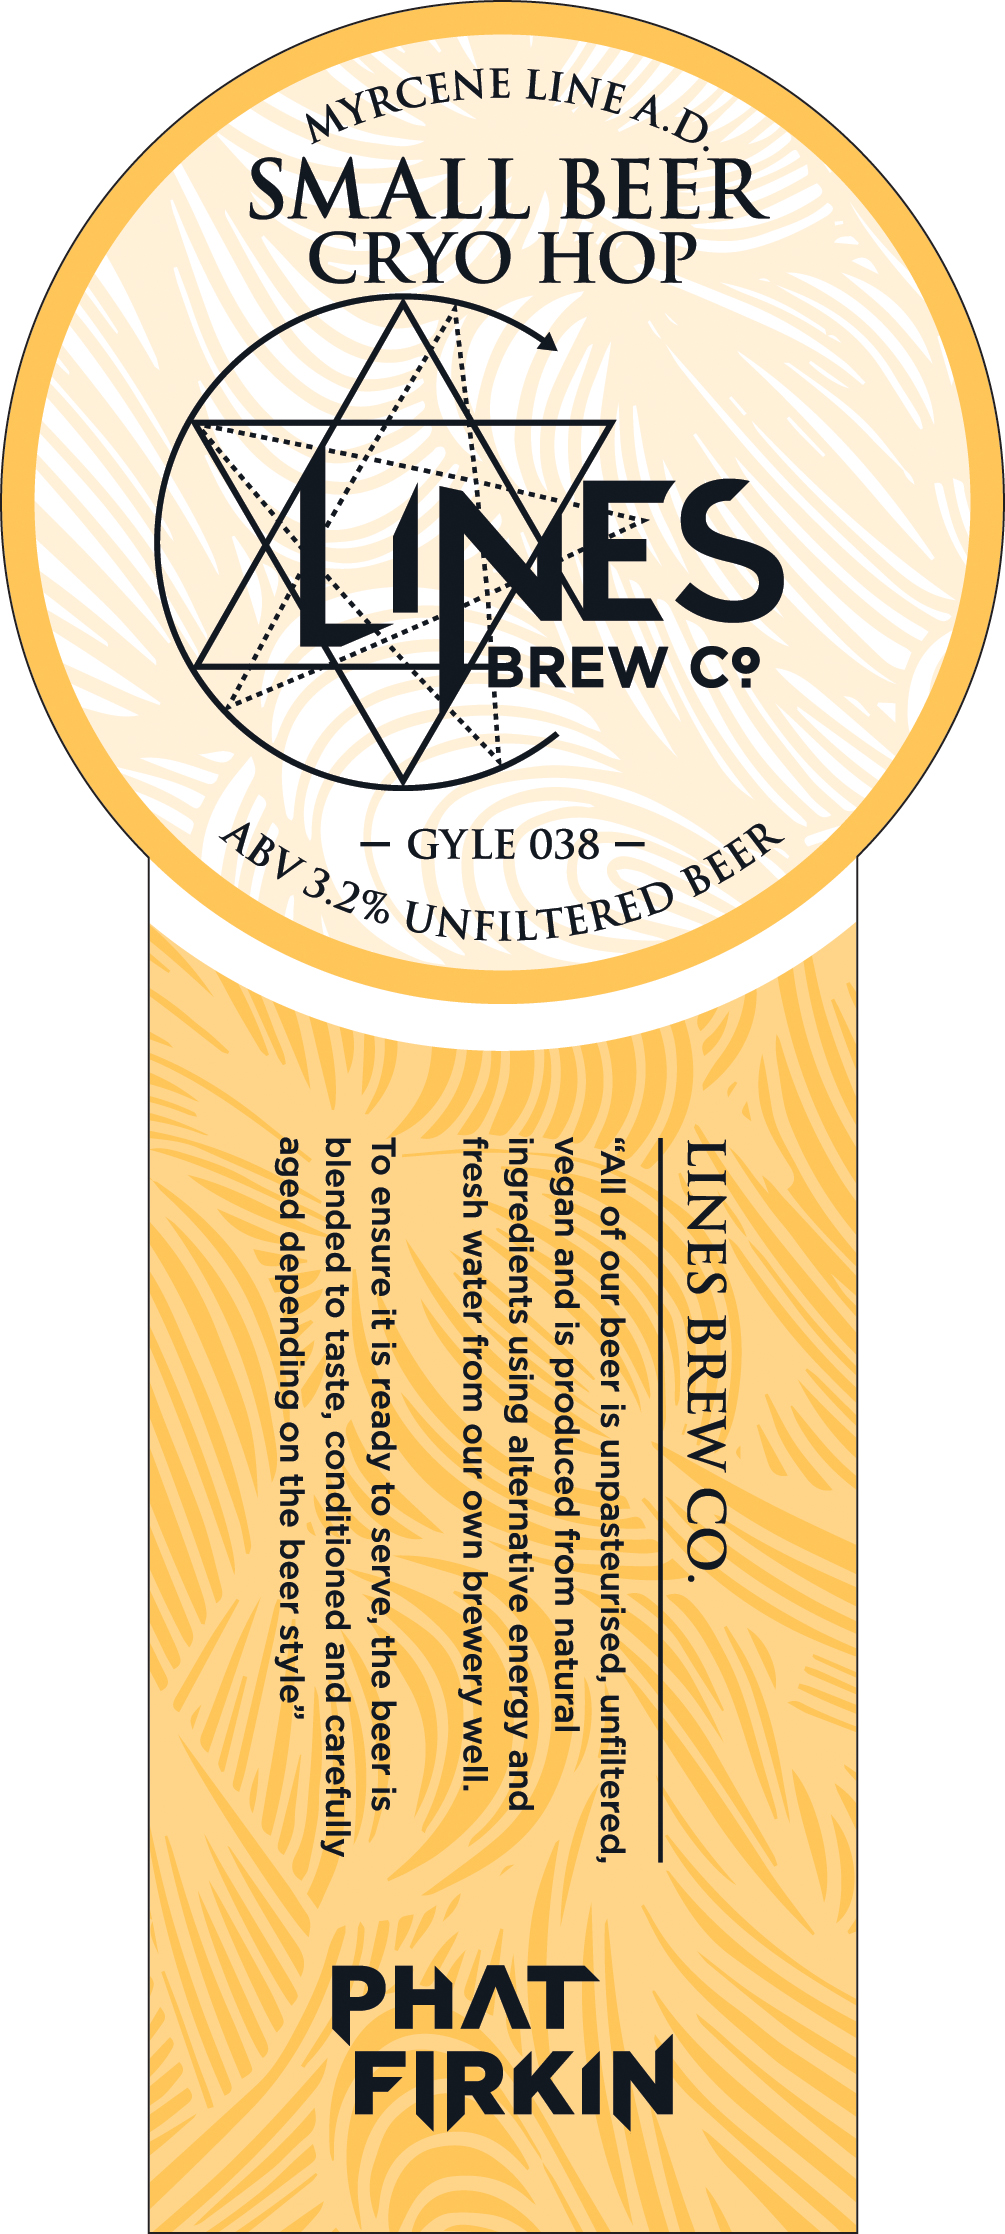 new beer release 'small beer cryo hop' (phat firkin ltd cask how much is a firkin new beer release 'small beer cryo hop' (phat firkin ltd cask series) lines brew co